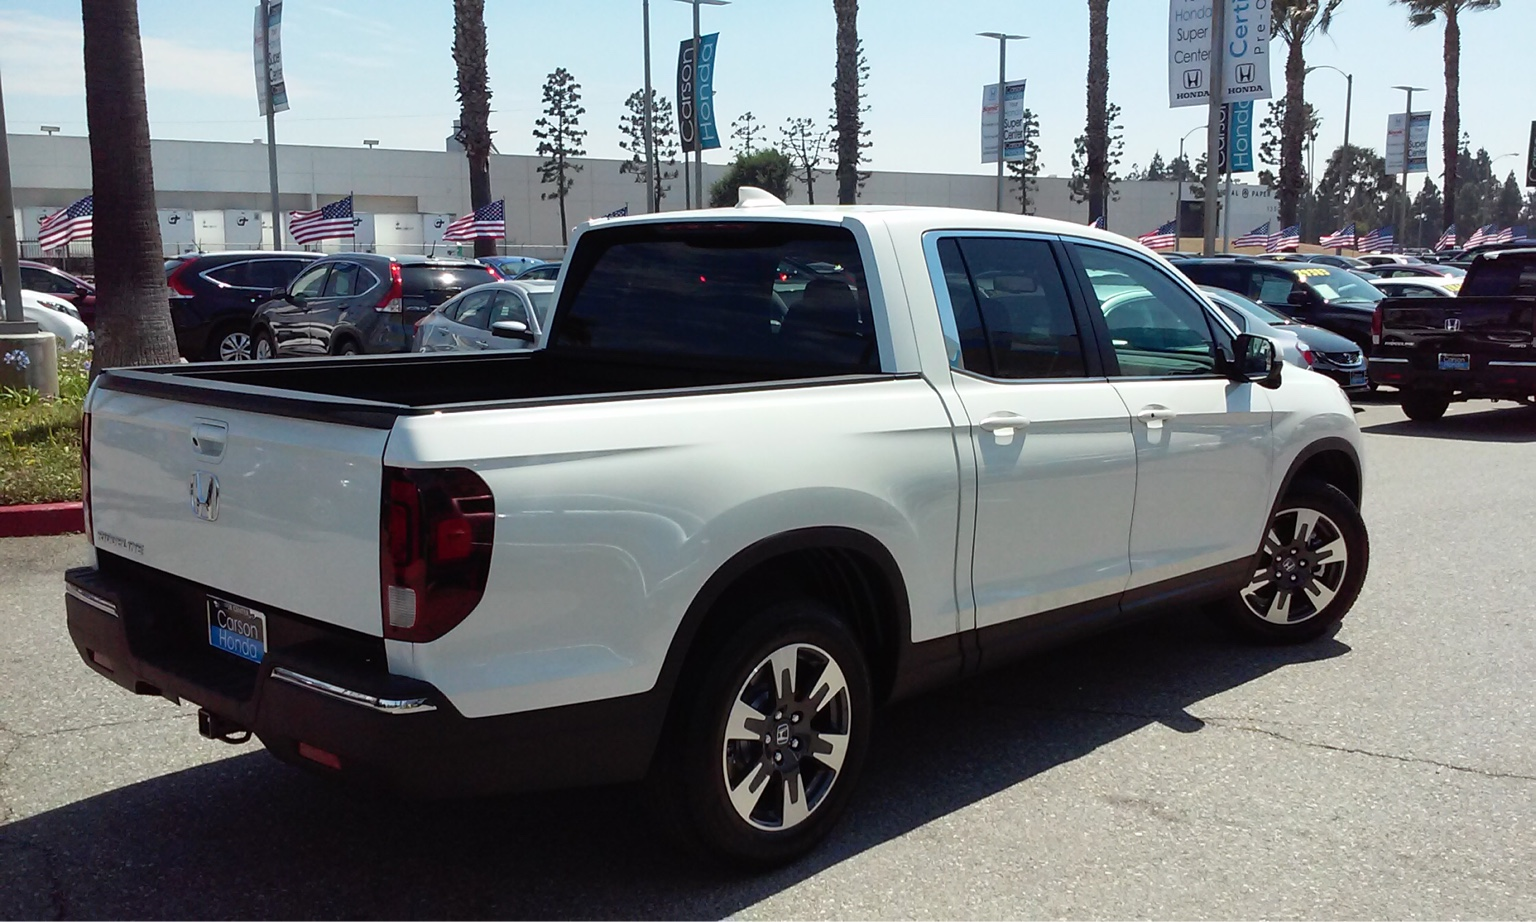 Drove It Home Today - Page 4 - Honda Ridgeline Owners Club Forums